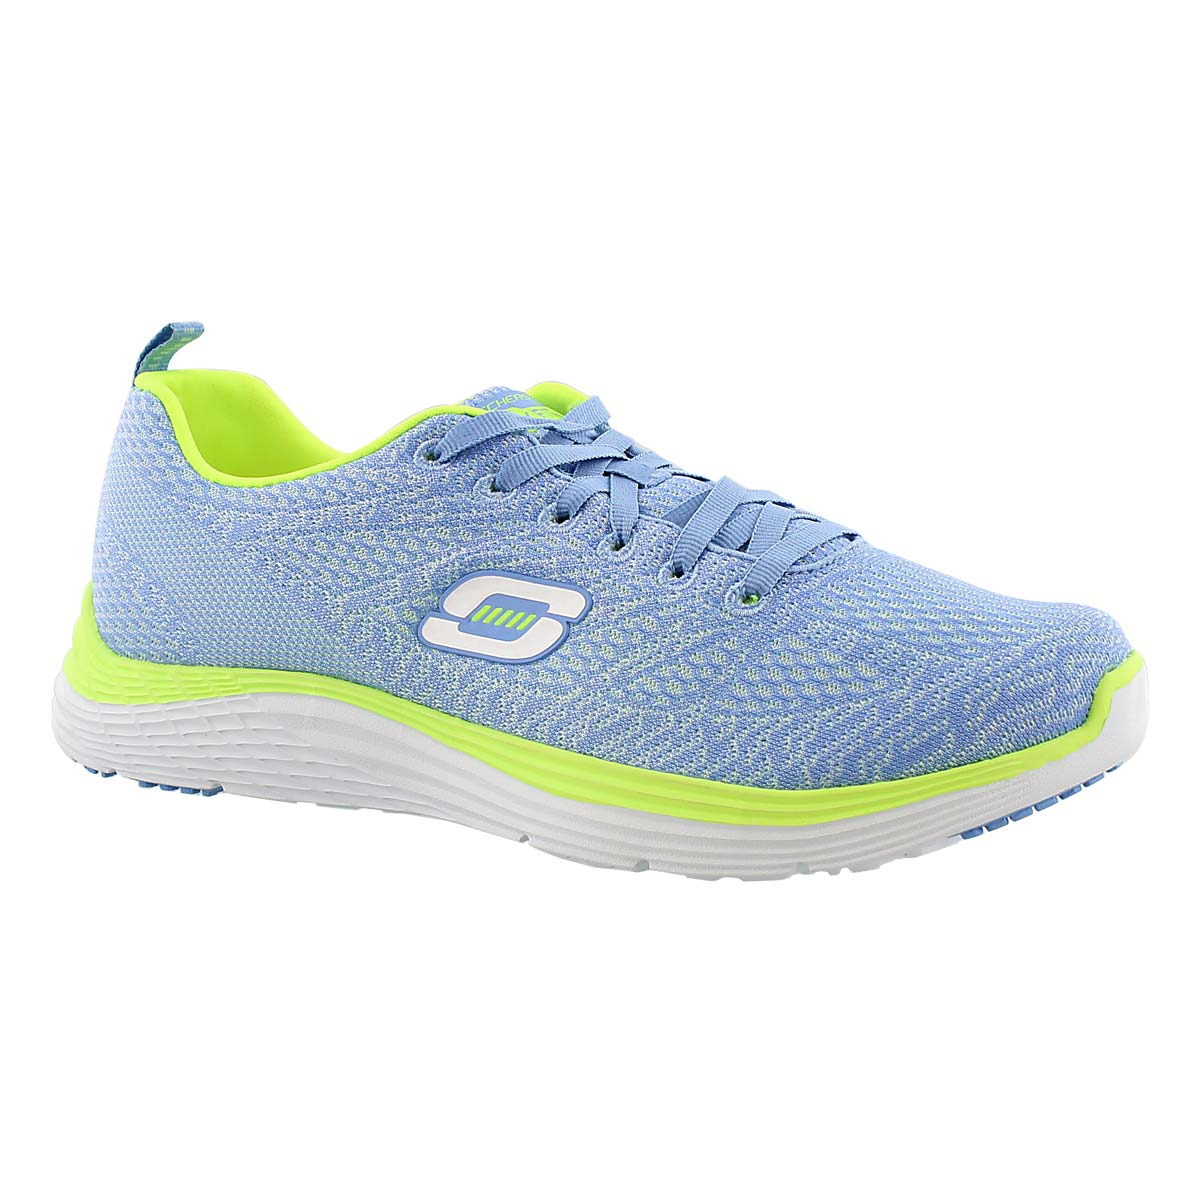 Women's VALERIS light blue/yellow lace up sneakers